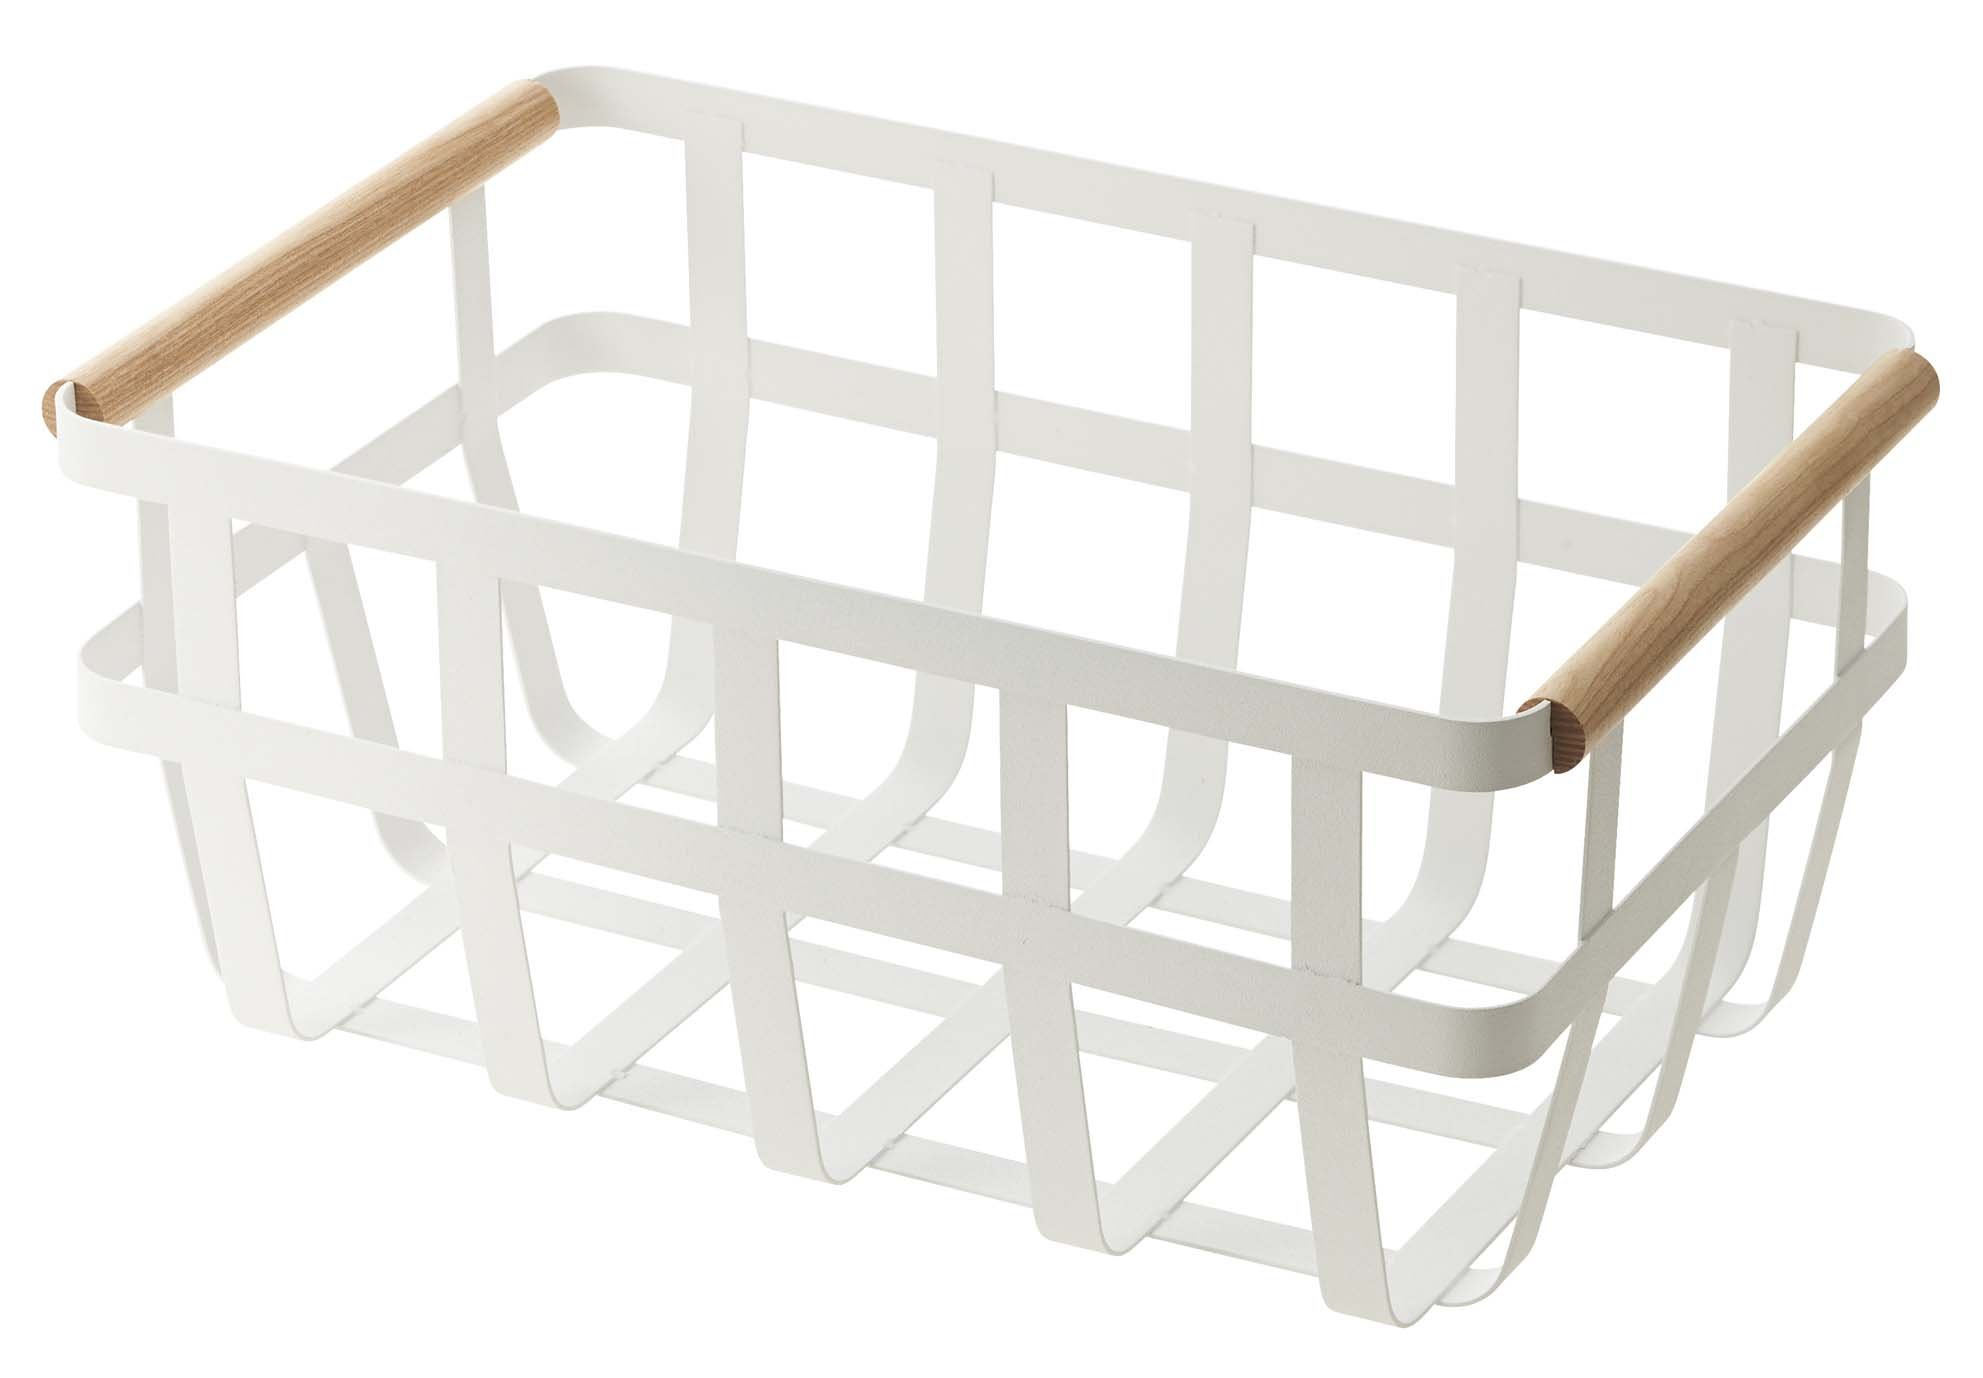 YAMAZAKI home Tosca Storage Basket, Dual Handle - Classy, modern design Can be used for anything Easy to move around and transport - living-room-decor, living-room, baskets-storage - 61rekLeSQTL -